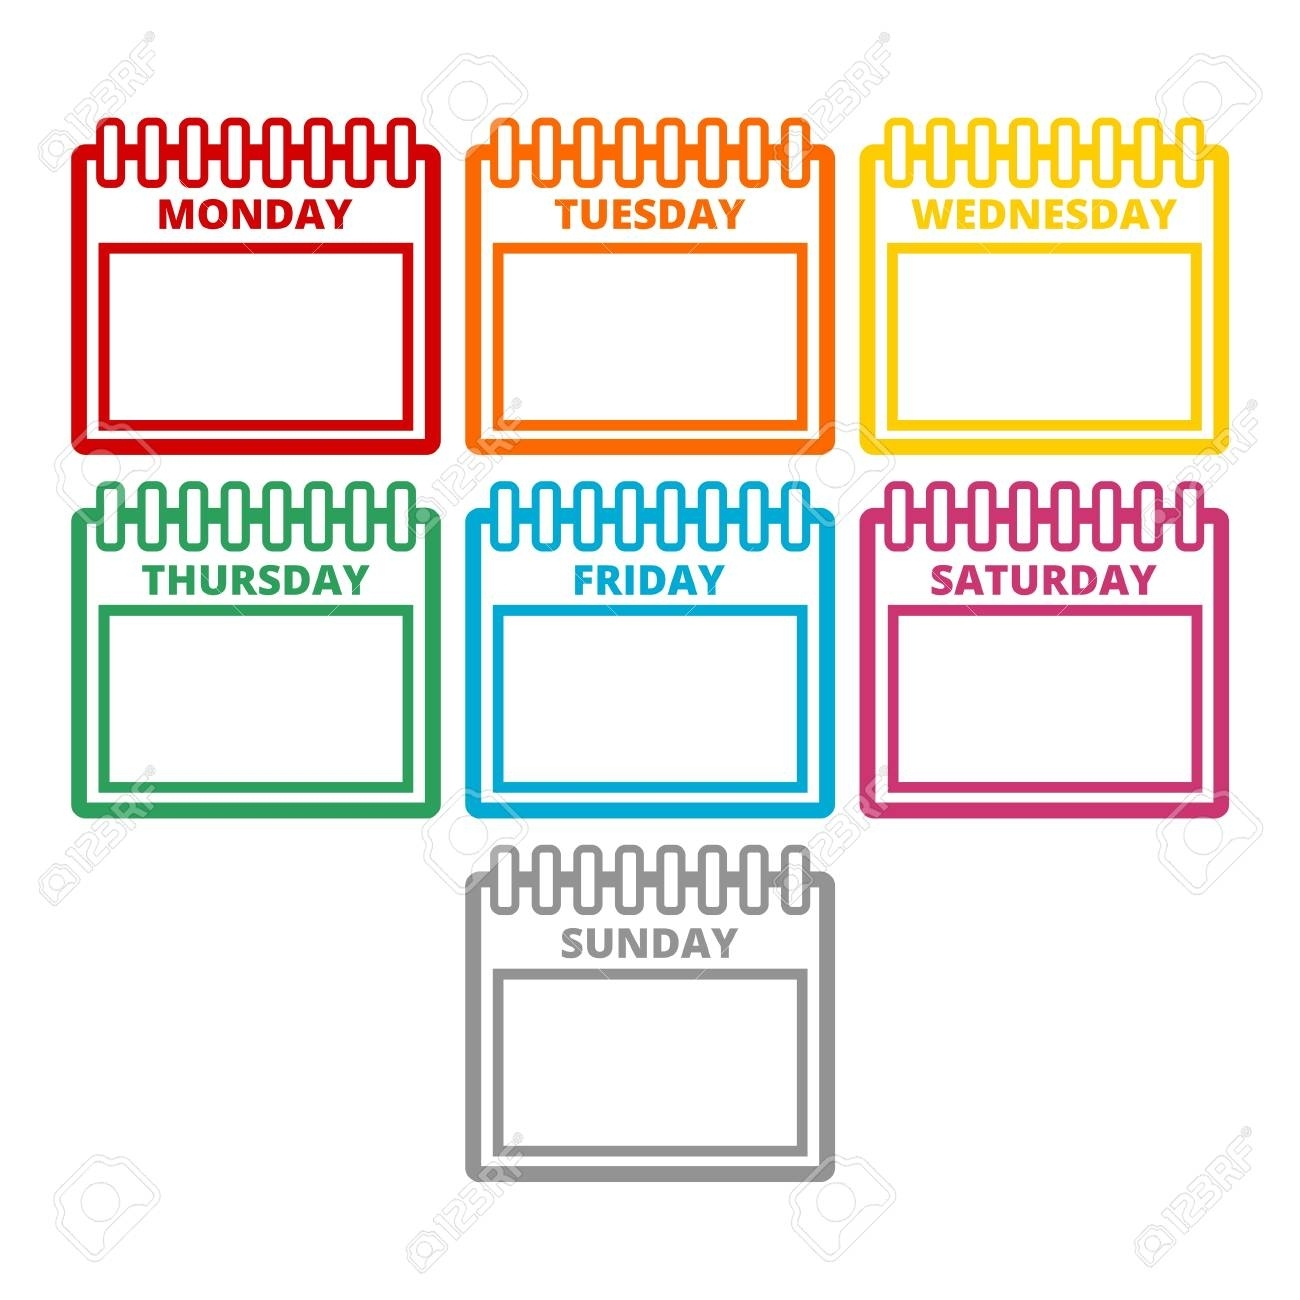 Days Of The Week, Calendar Sheets With The Days Of The Week